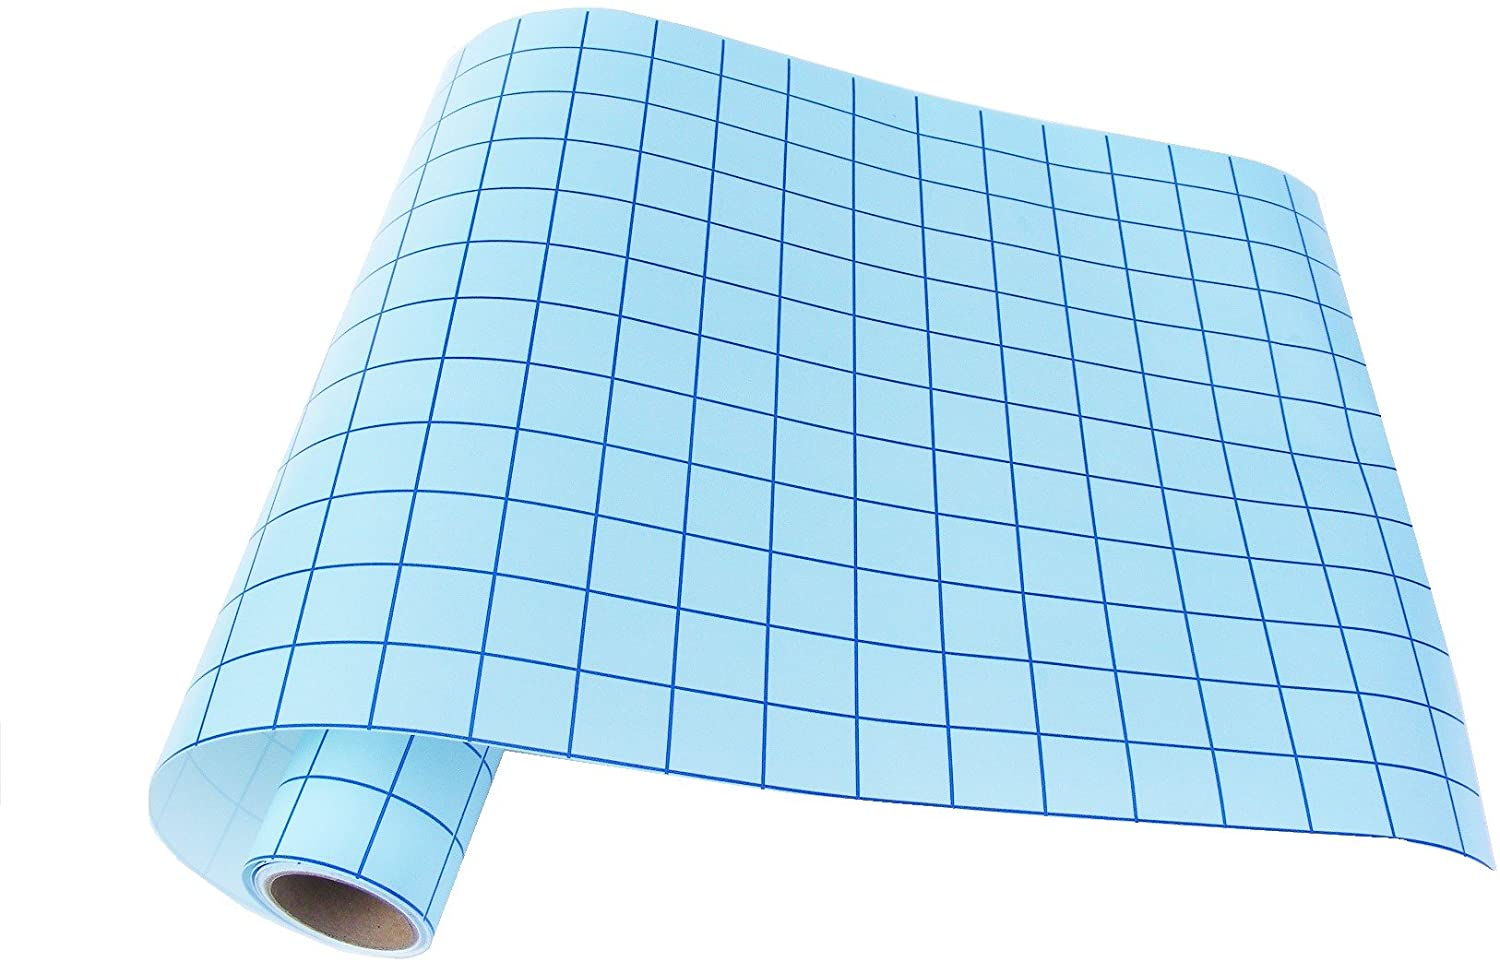 """Qbc Craft 12"""" x 10 Feet Transfer Paper Tape for Vinyl Application with Blue Grid Lines - Self Adhesive Transfer Paper Roll Compatible with Cricut, Silhouette Cameo - 12 Inch by 10 Feet, Clear"""